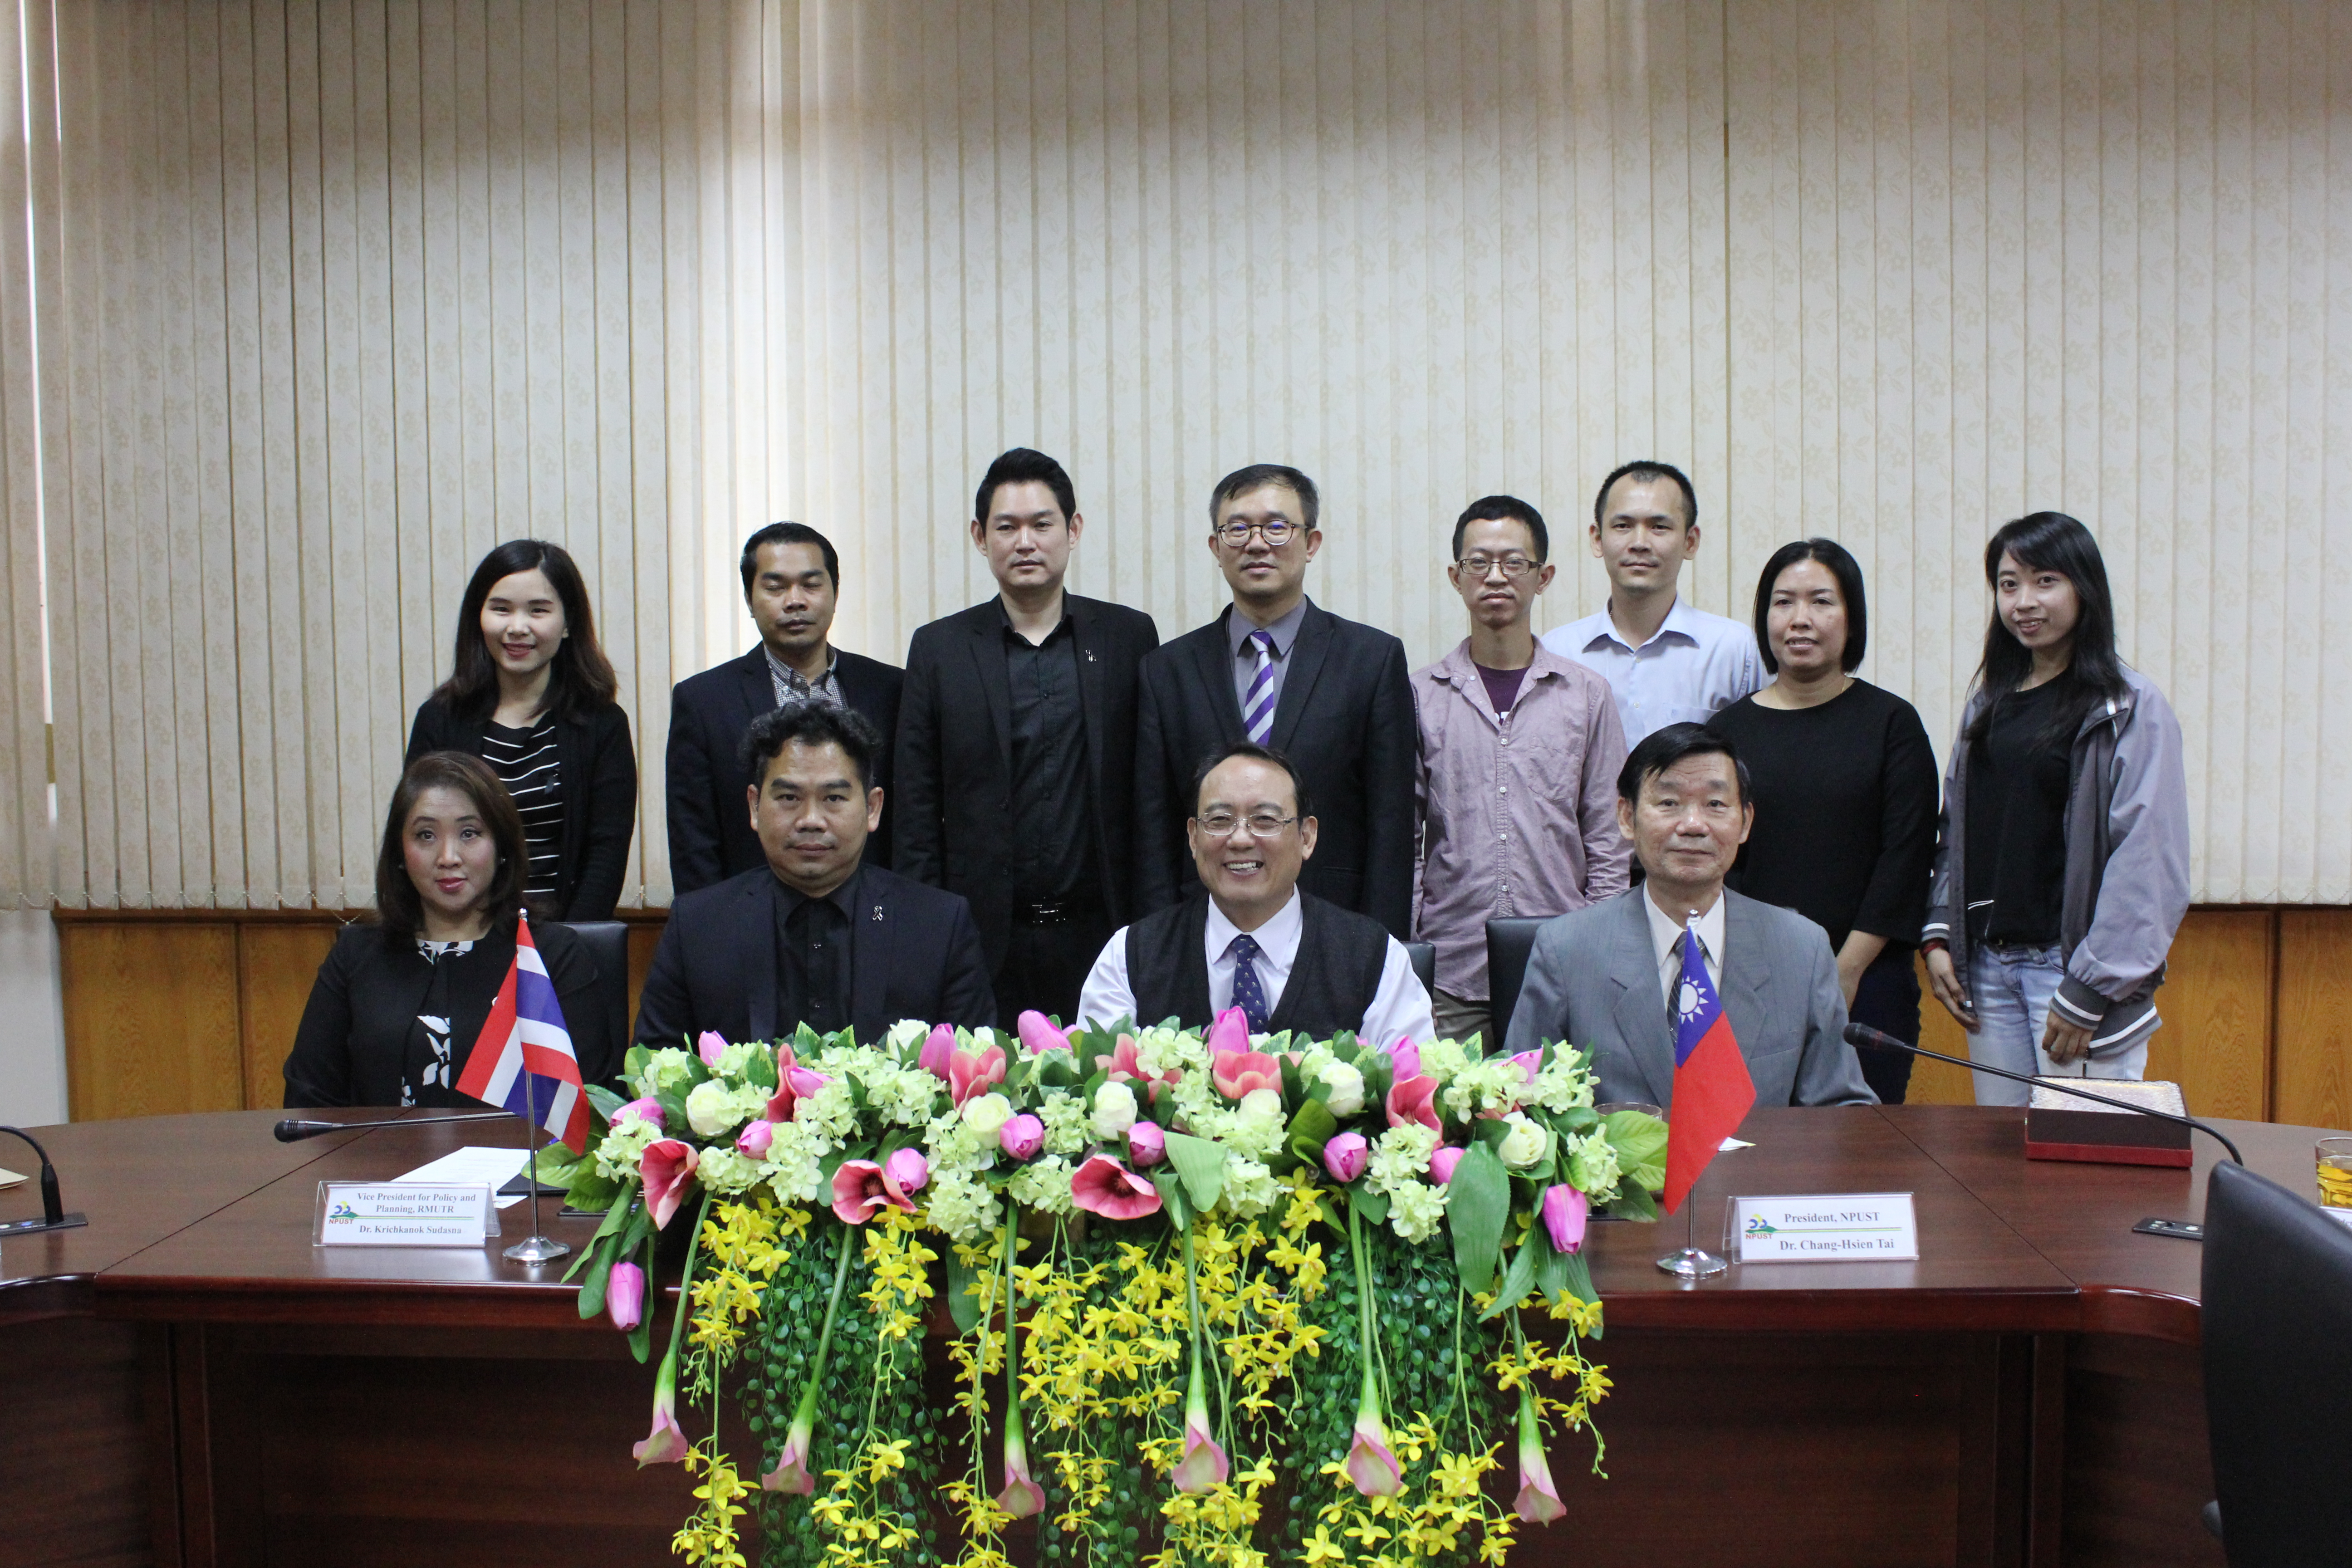 Rector of Thailand's RMUTR Visits to Renew MOU